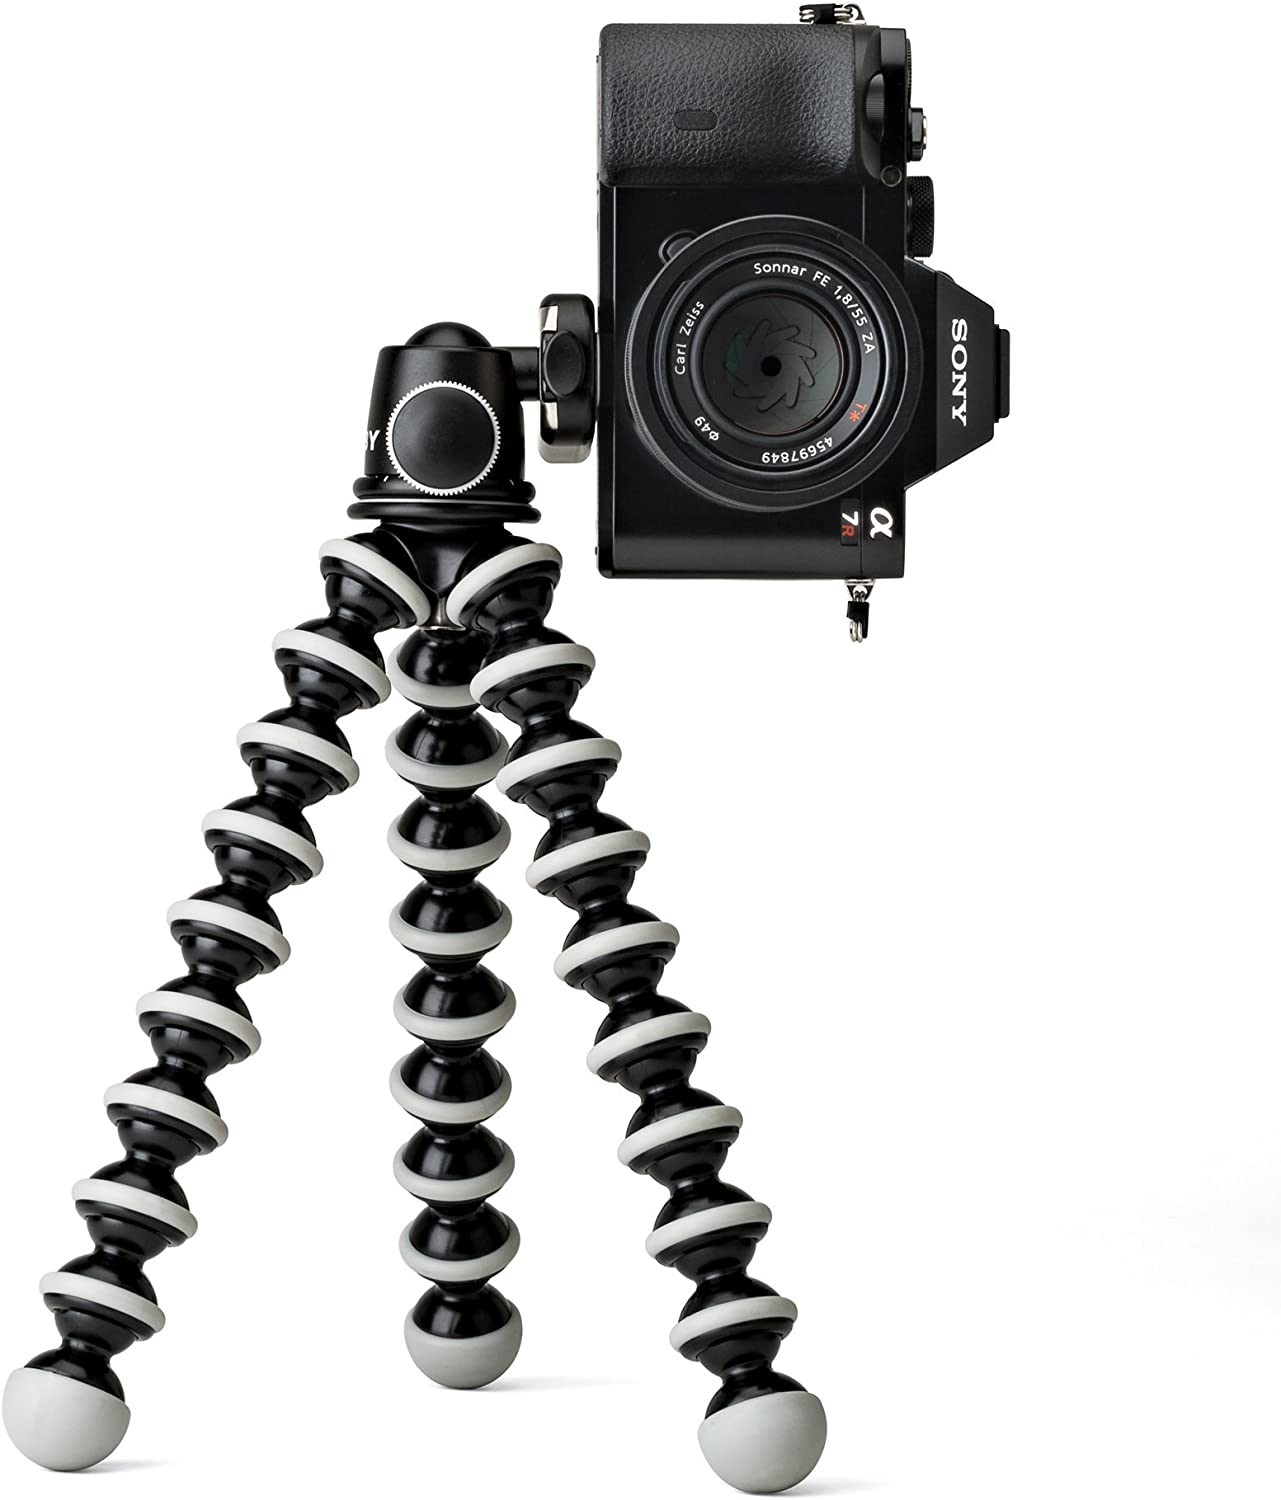 Renewed JOBY GorillaPod SLR Zoom Flexible Tripod with Ballhead Bundle for DSLR and Mirrorless Cameras Up To 3kg. 6.6lbs